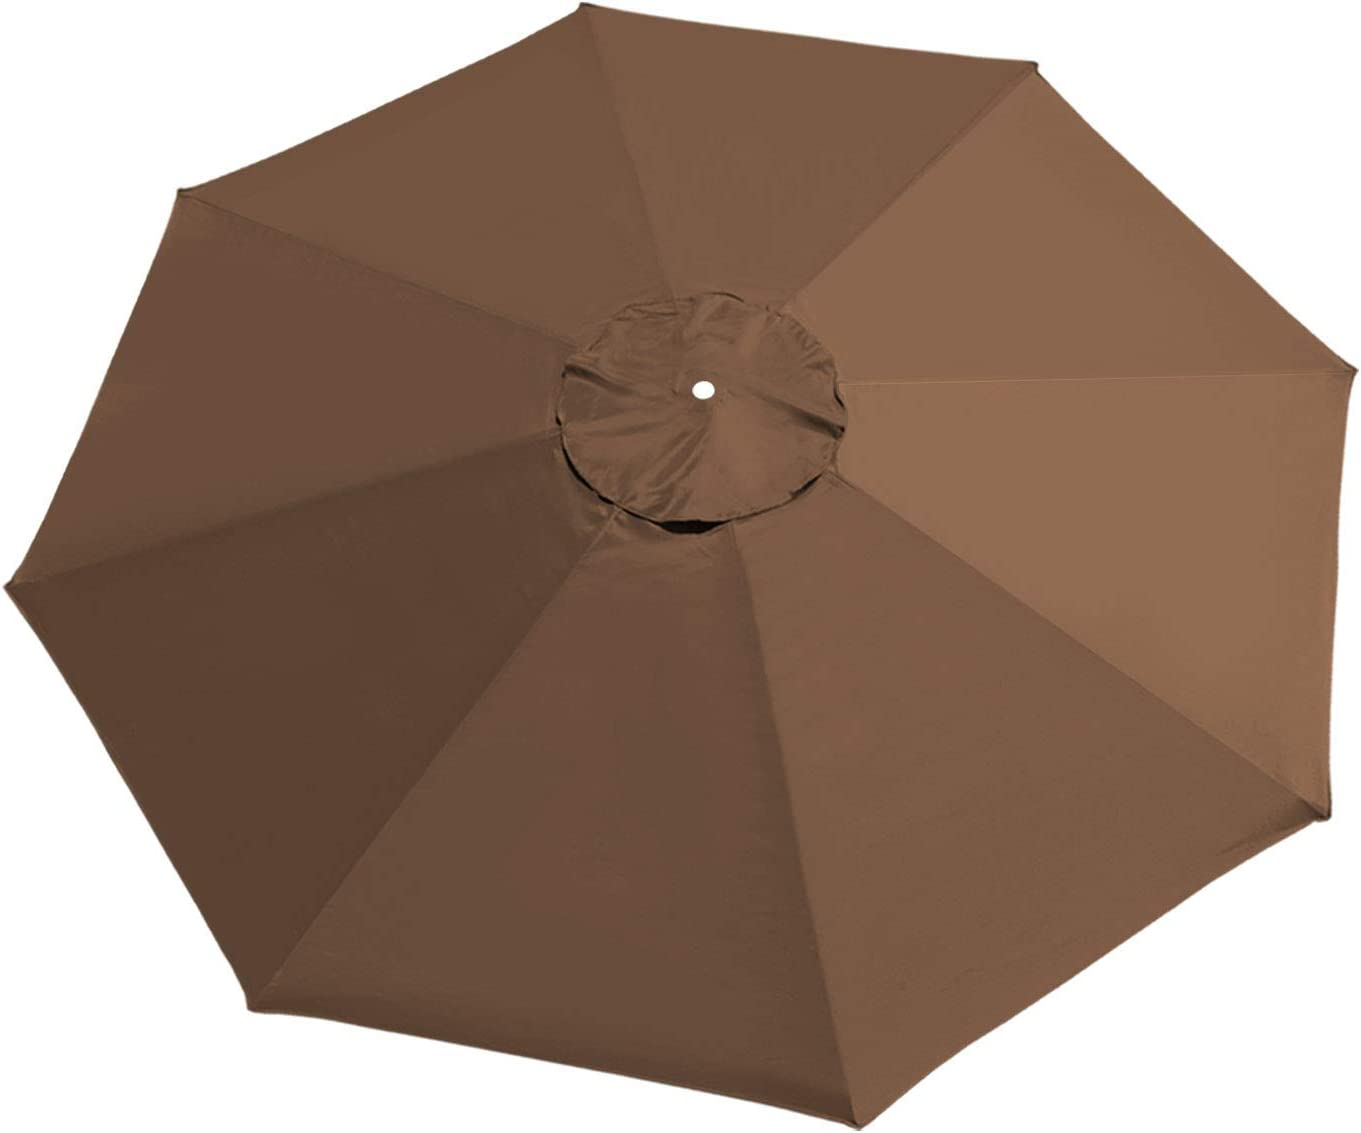 BenefitUSA UC-12 Canopy 10ft 8 Rib Patio Replacement Top Outdoor (Brown) Umbrella Cover